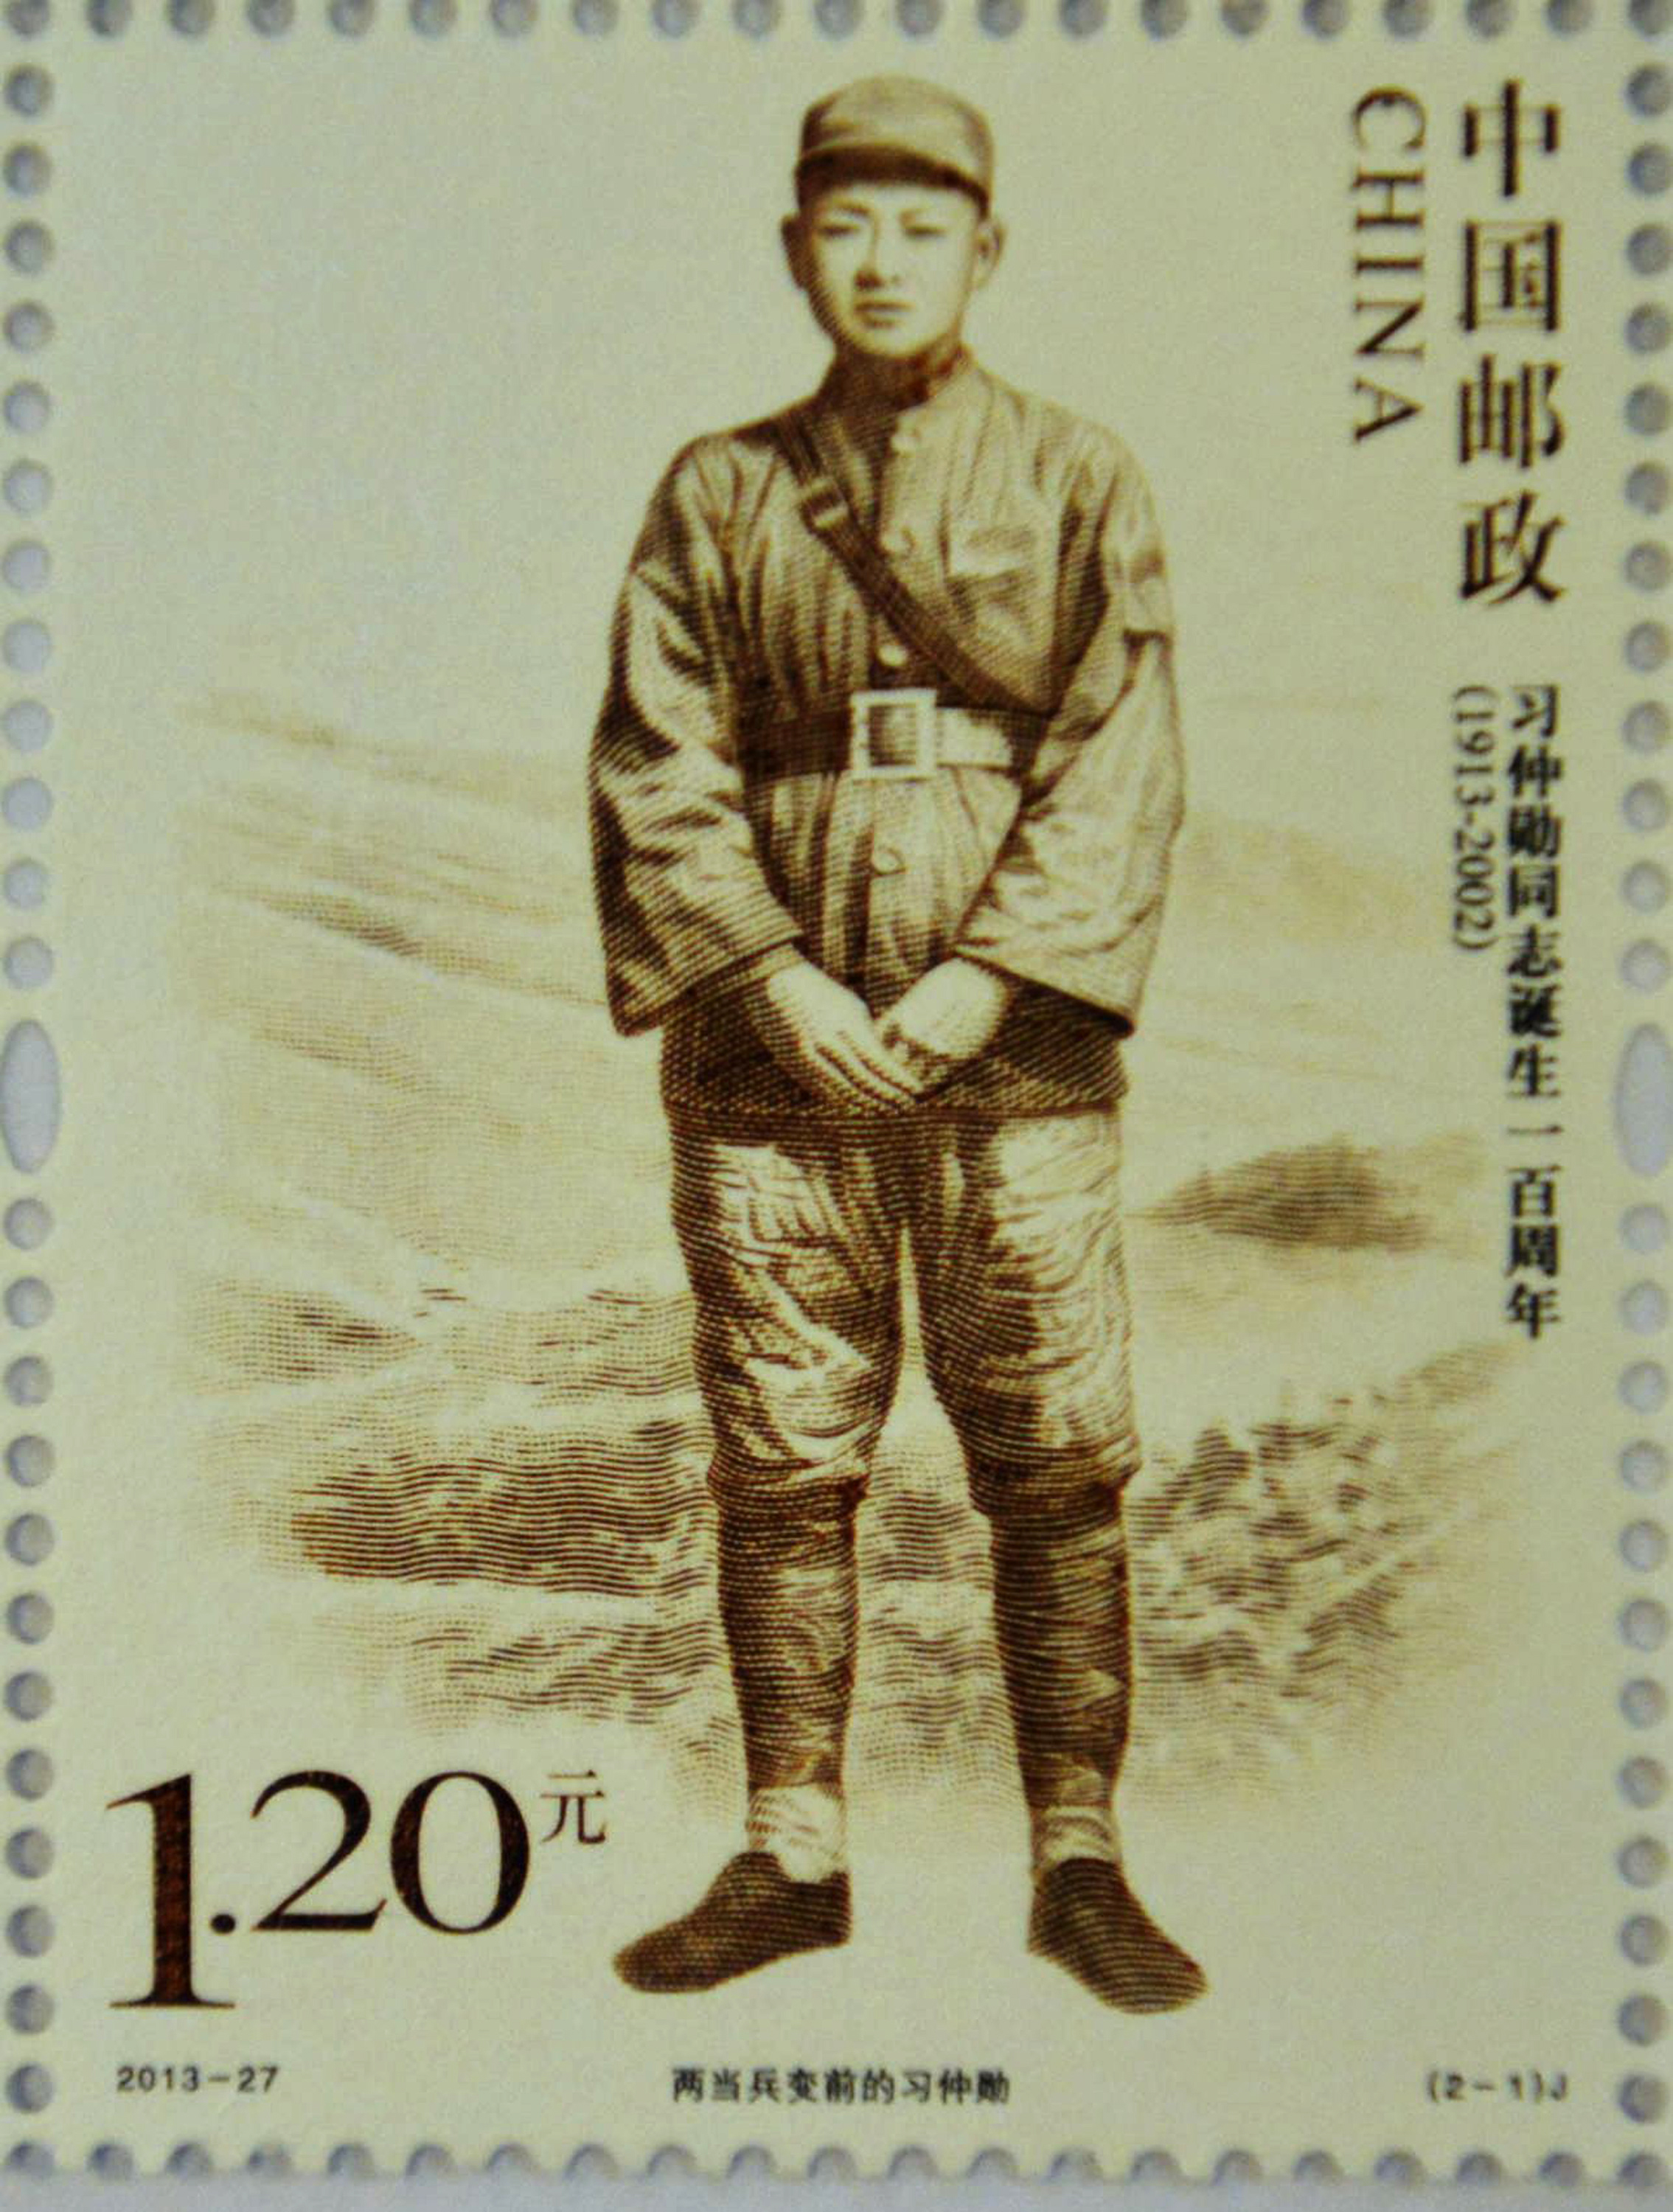 Slide 67 of 70: A postal stamp commemorating Xi Zhongxun, who died in 2002, a military leader in northwest China during the civil war which culminated in the founding of the People's Republic in 1949, and eventually rose to vice premier, at a post office in Hangzhou, east China's Zhejiang province on October 15, 2013. China marks the 100th anniversary of the birth of President Xi Jinping's father, a Communist war hero, but analysts say the connection is a mixed blessing for the head of state. CHINA OUT AFP PHOTO (Photo credit should read STR/AFP/Getty Images)